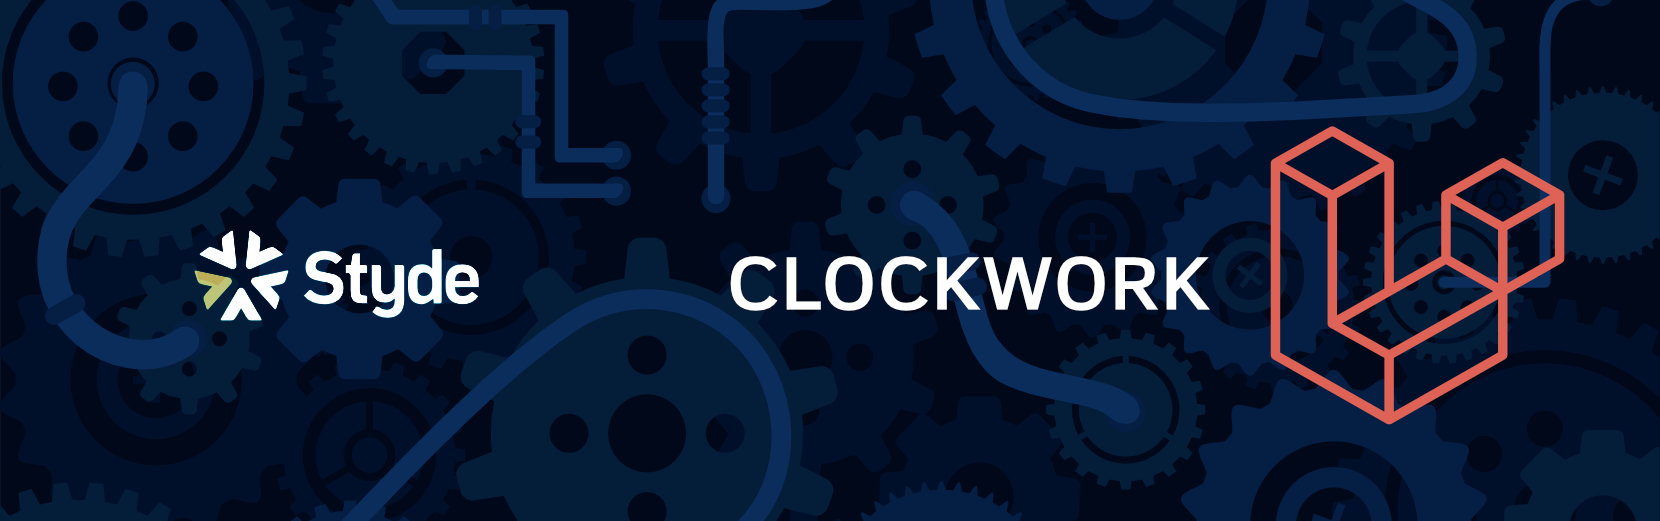 Laravel Clockwork